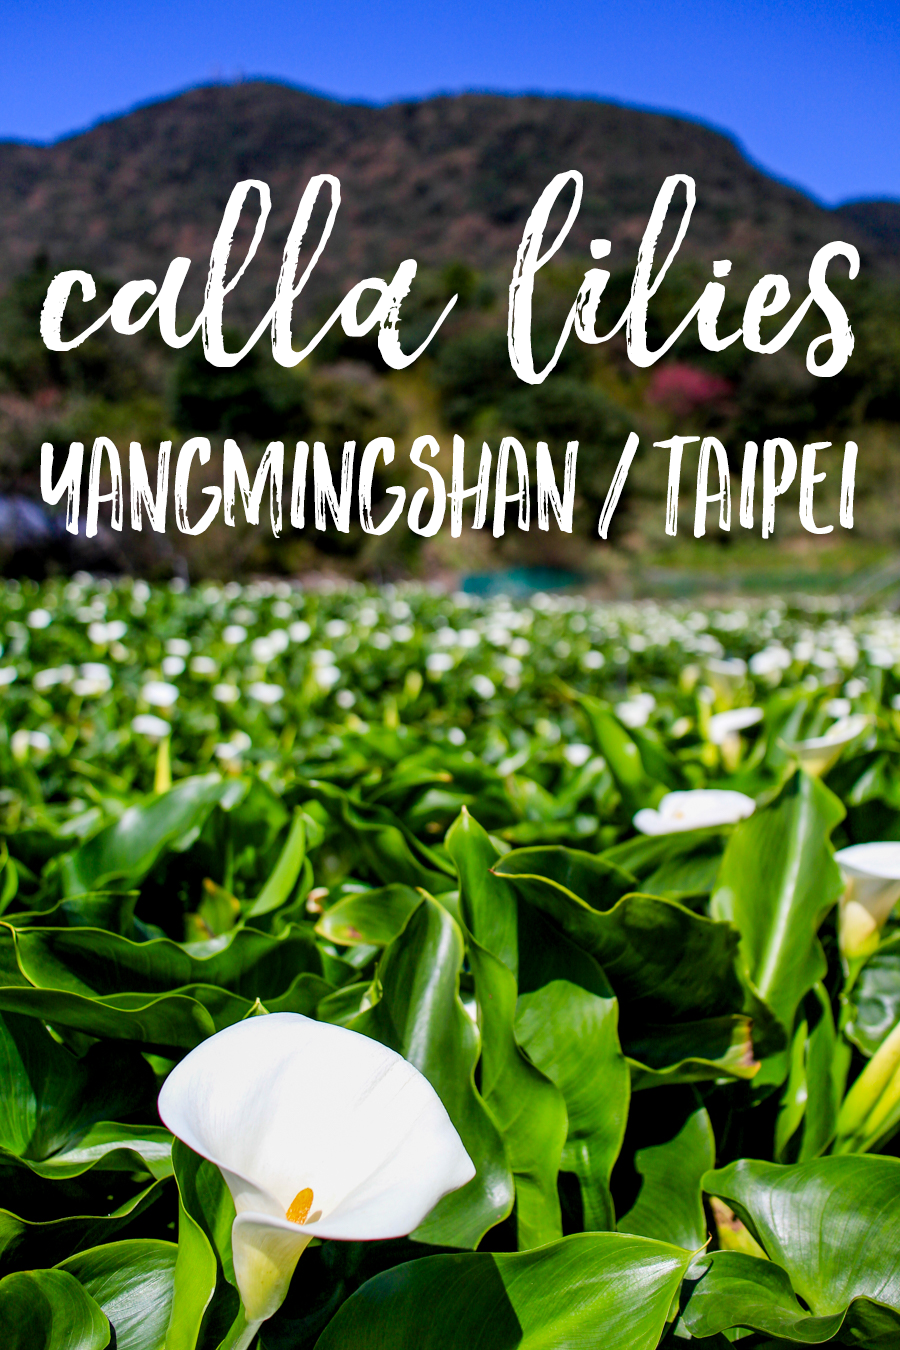 nestled between the mountains of Yangmingshan National Park just outside Taipei, the small village of Zhuzihu is where visitors can go to view endless fields of calla lilies in spring.